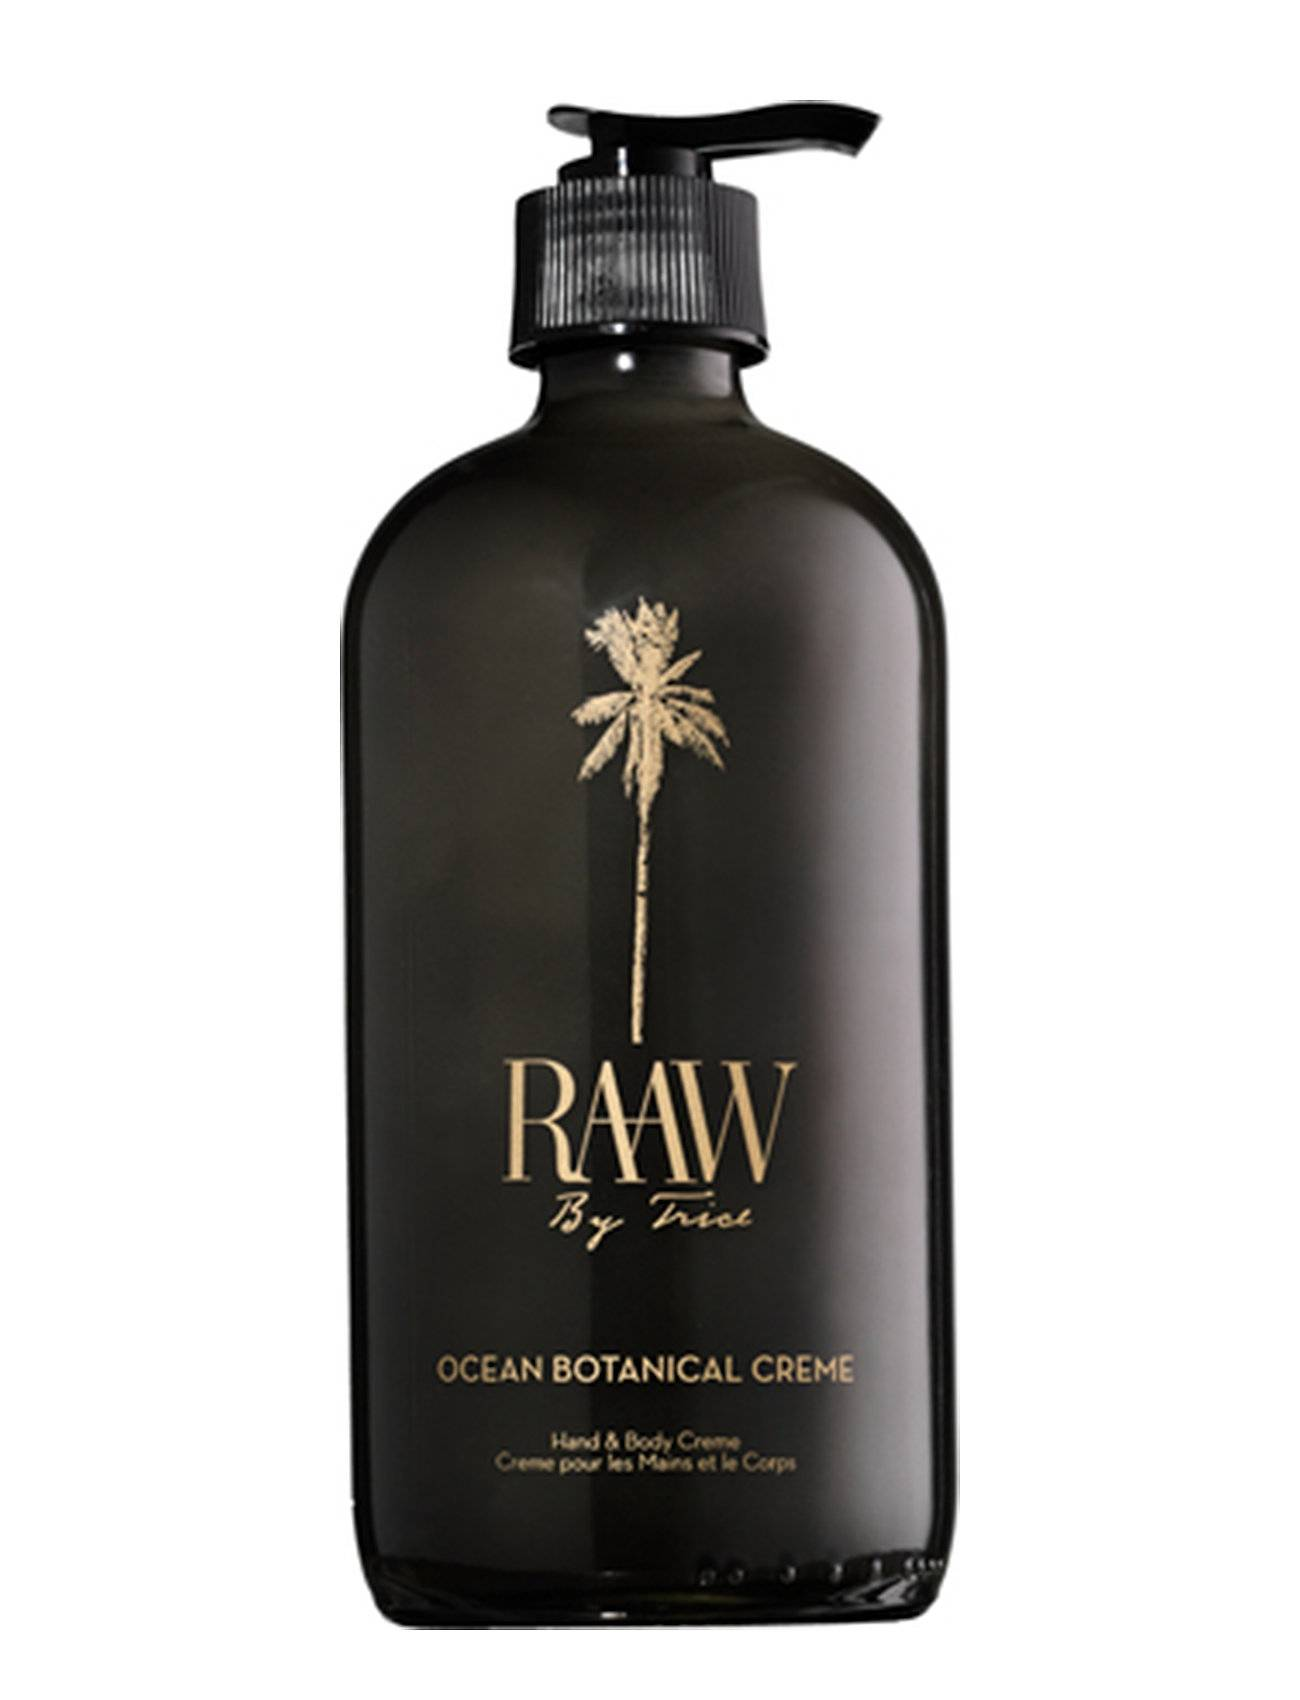 Raaw by Trice Ocean Botanical Creme Beauty WOMEN Skin Care Body Body Lotion Nude Raaw By Trice